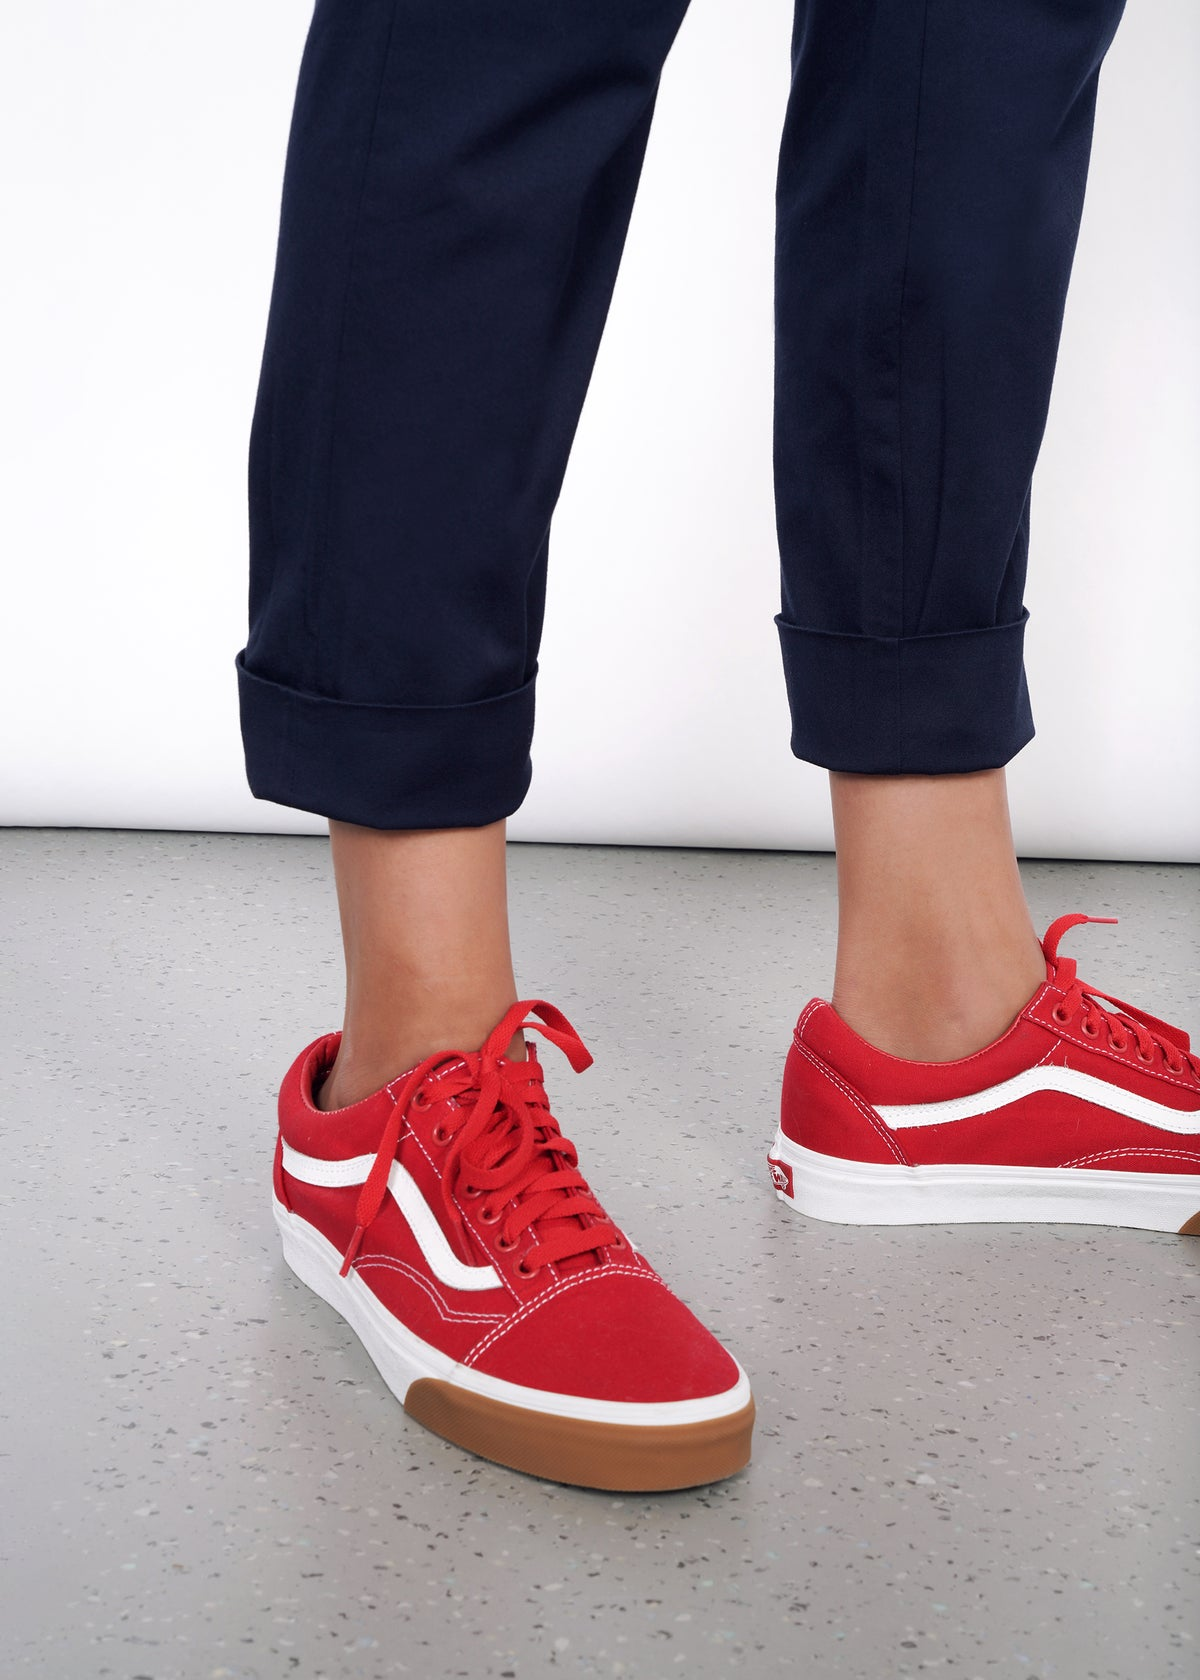 Pant leg cuff on navy trouser pant, cuffed once cleanly and worn with red vans